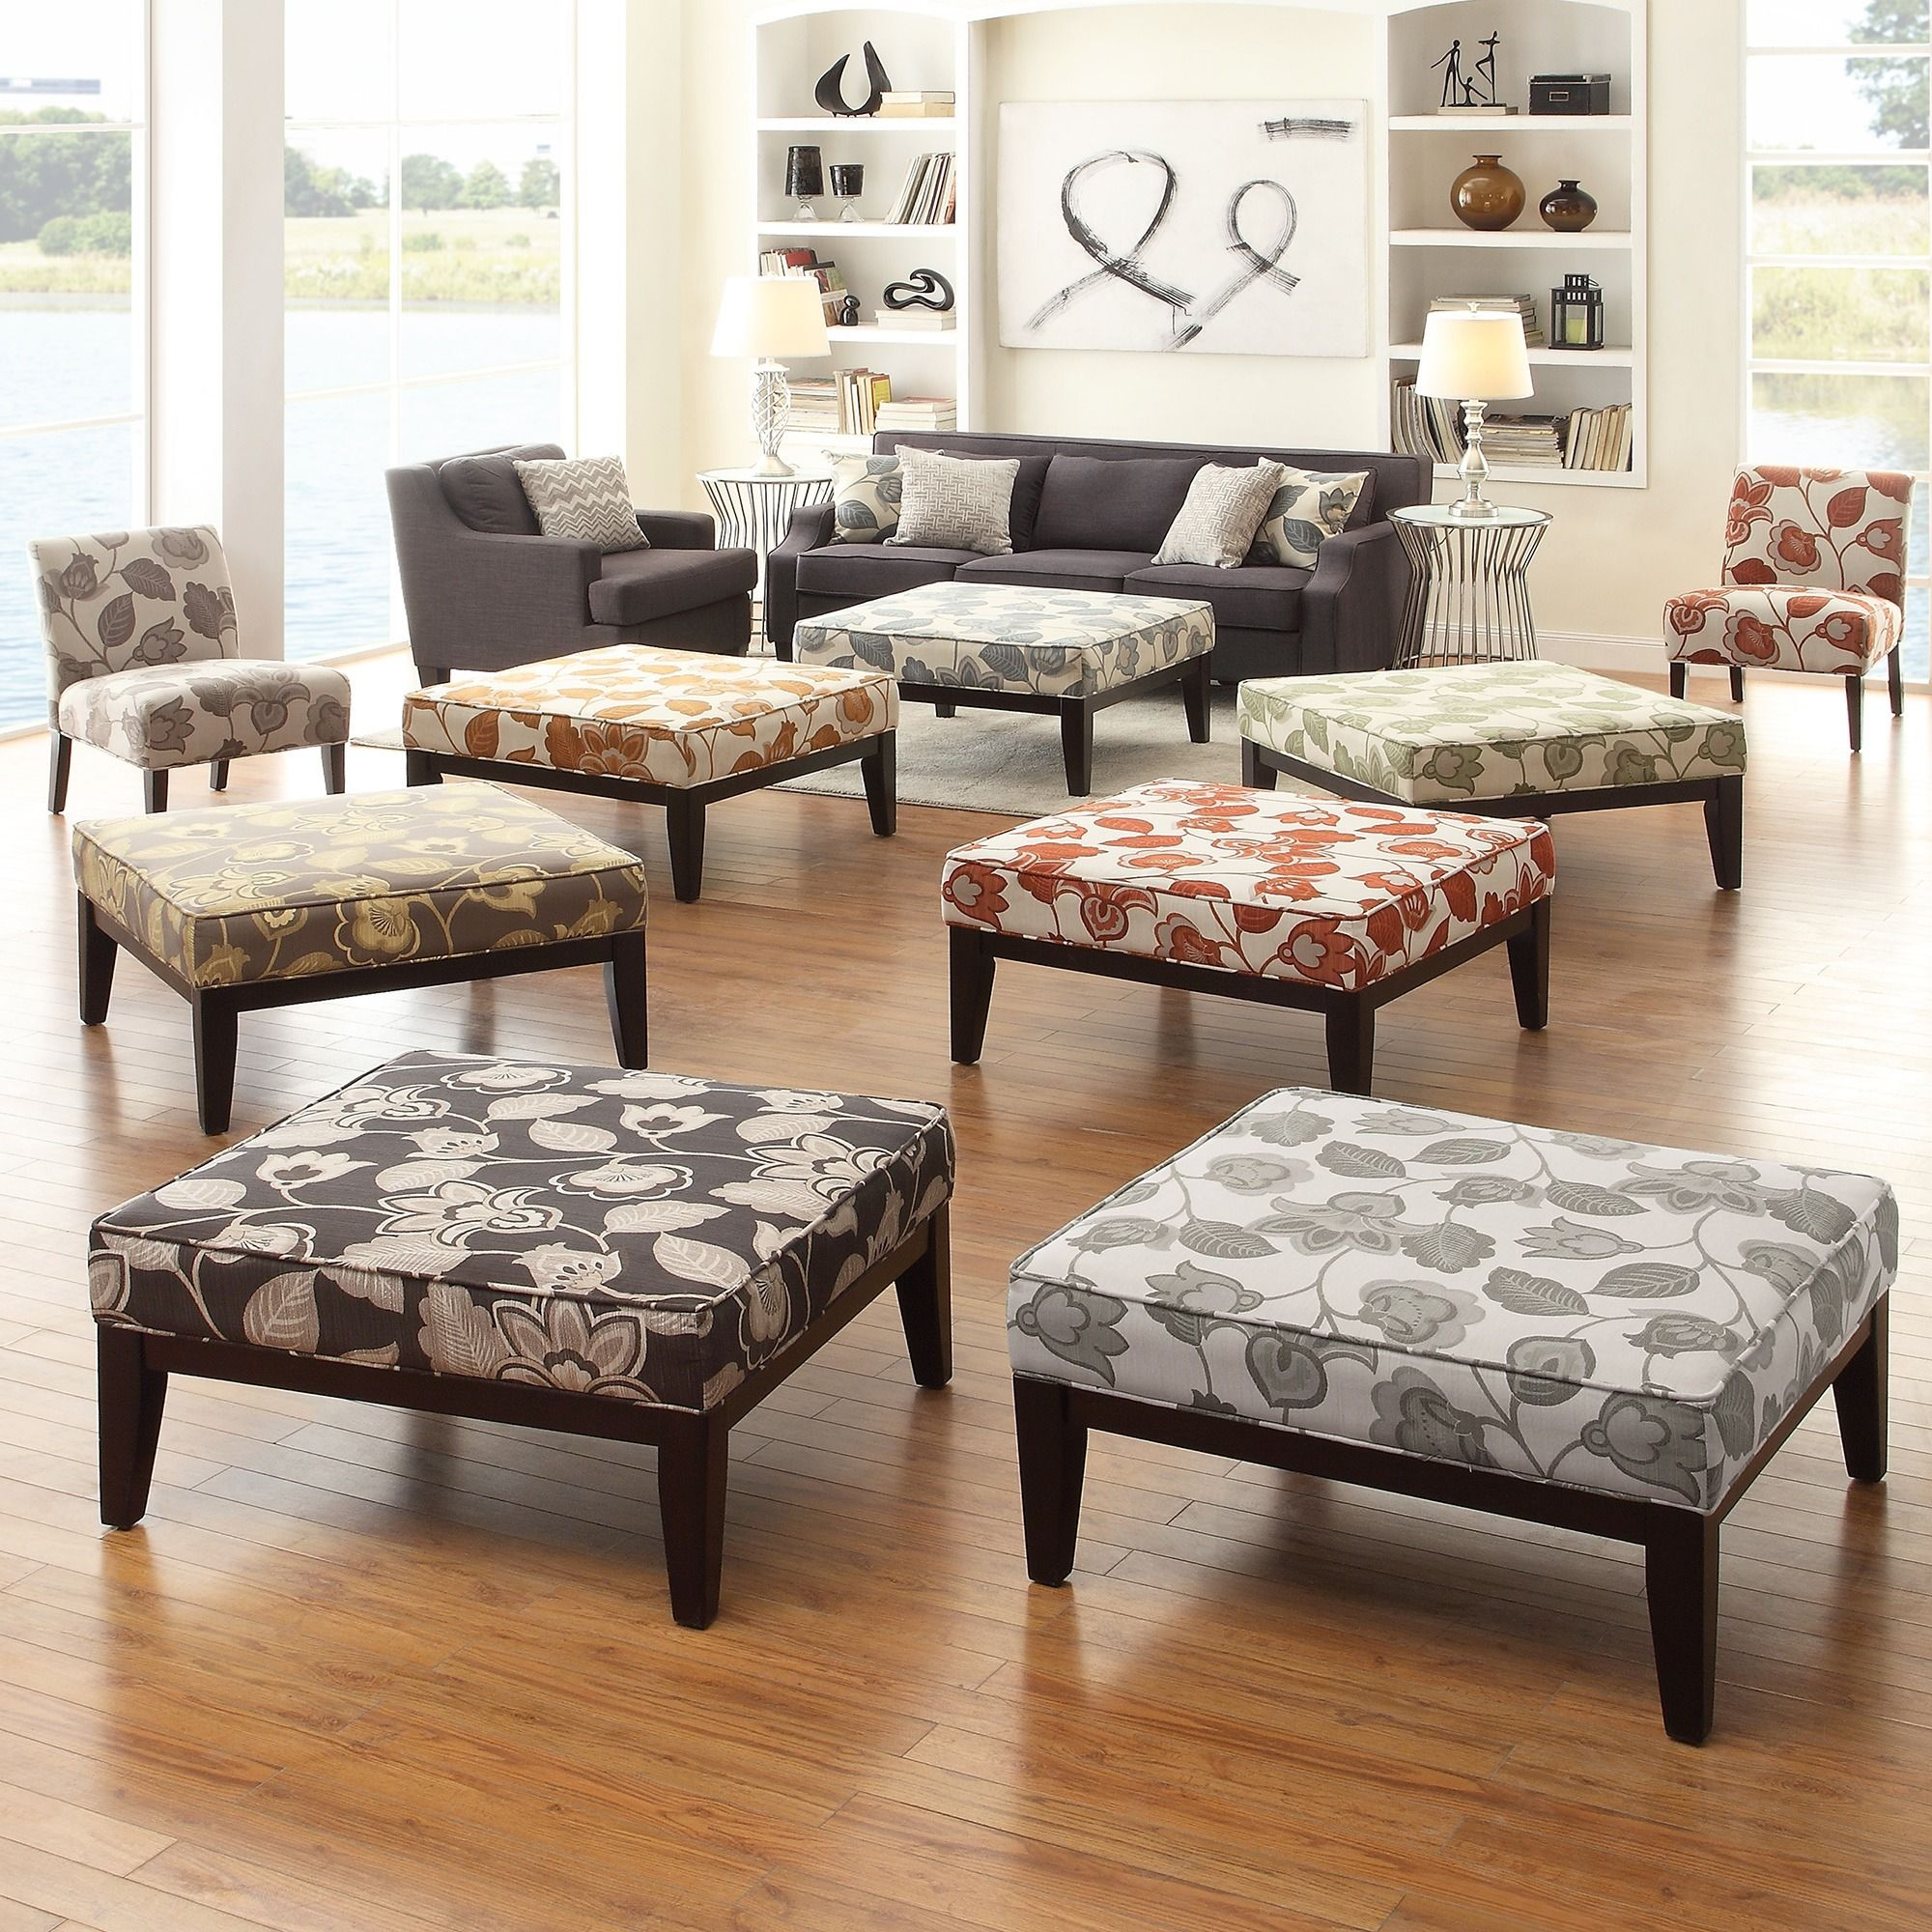 INSPIRE Q Ashland 36-inch Floral Upholstered Cocktail Ottoman by iNSPIRE Q